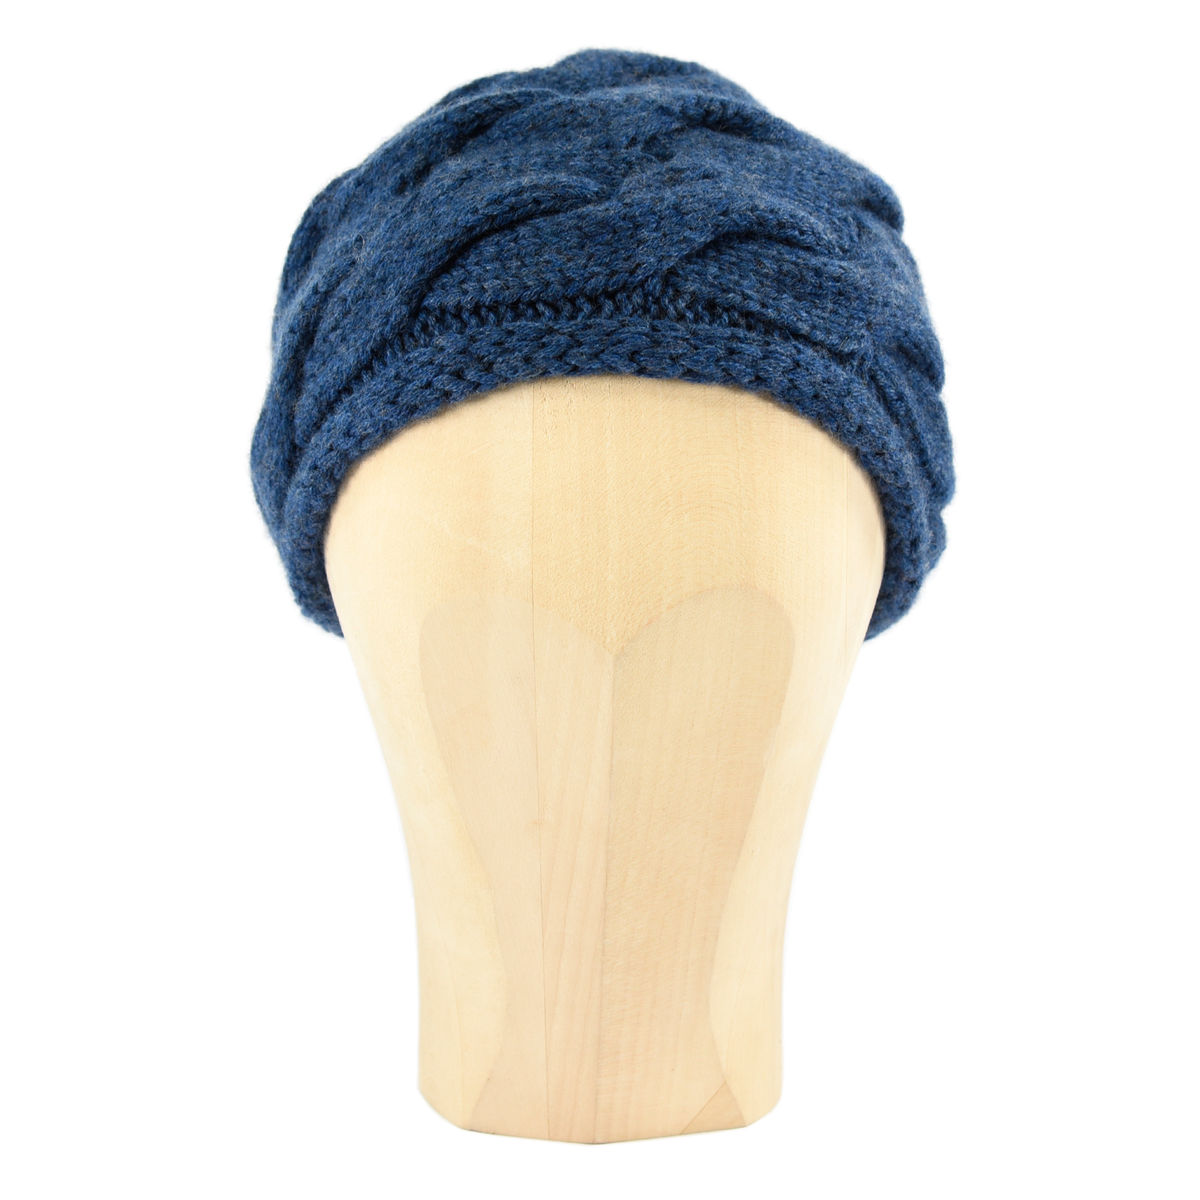 Chunky Braid Beanie - Heathered Blue - product images  of